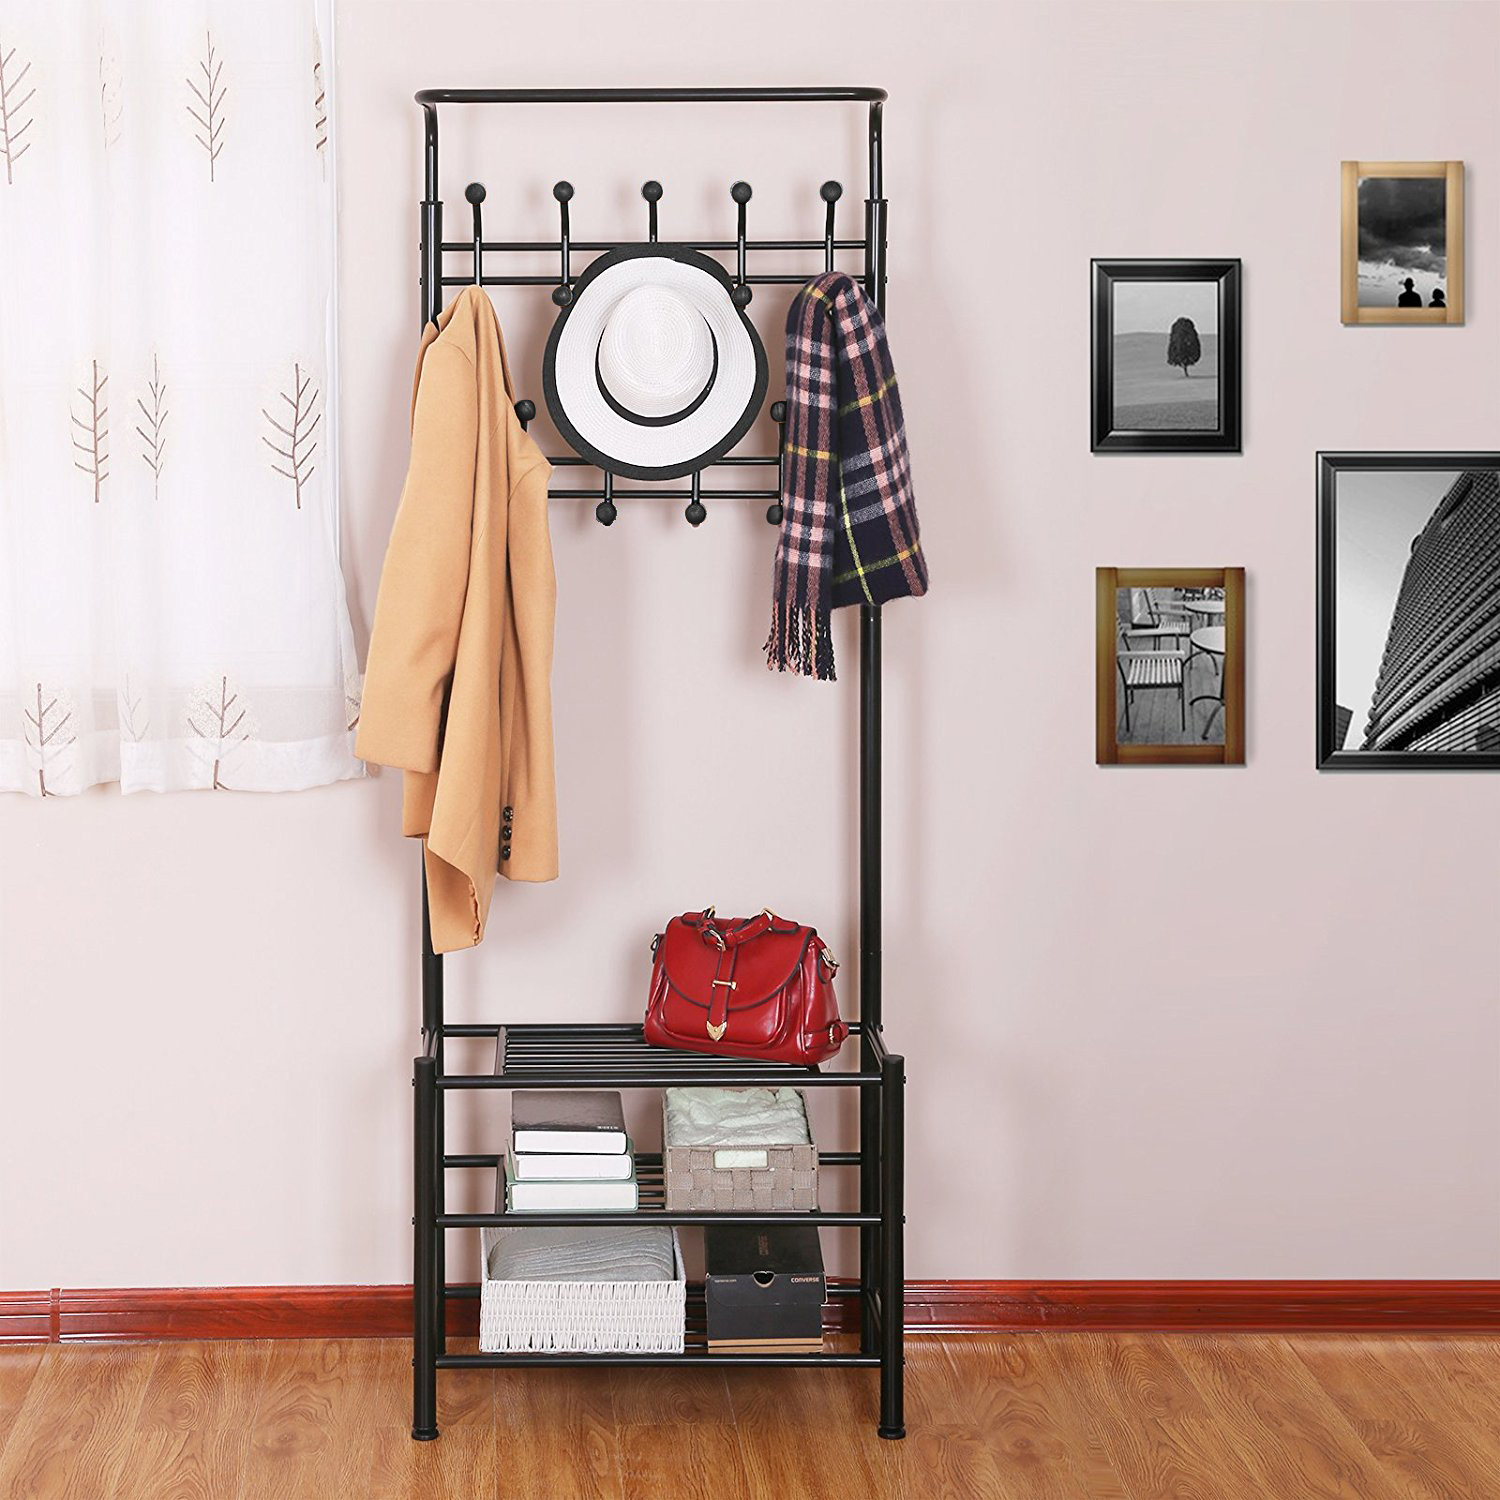 Multifunction Metal Easy To Install Home Shoe Cabinet Shelf Storage Coat Rack Organizer Stand Holder Space Saving HWC